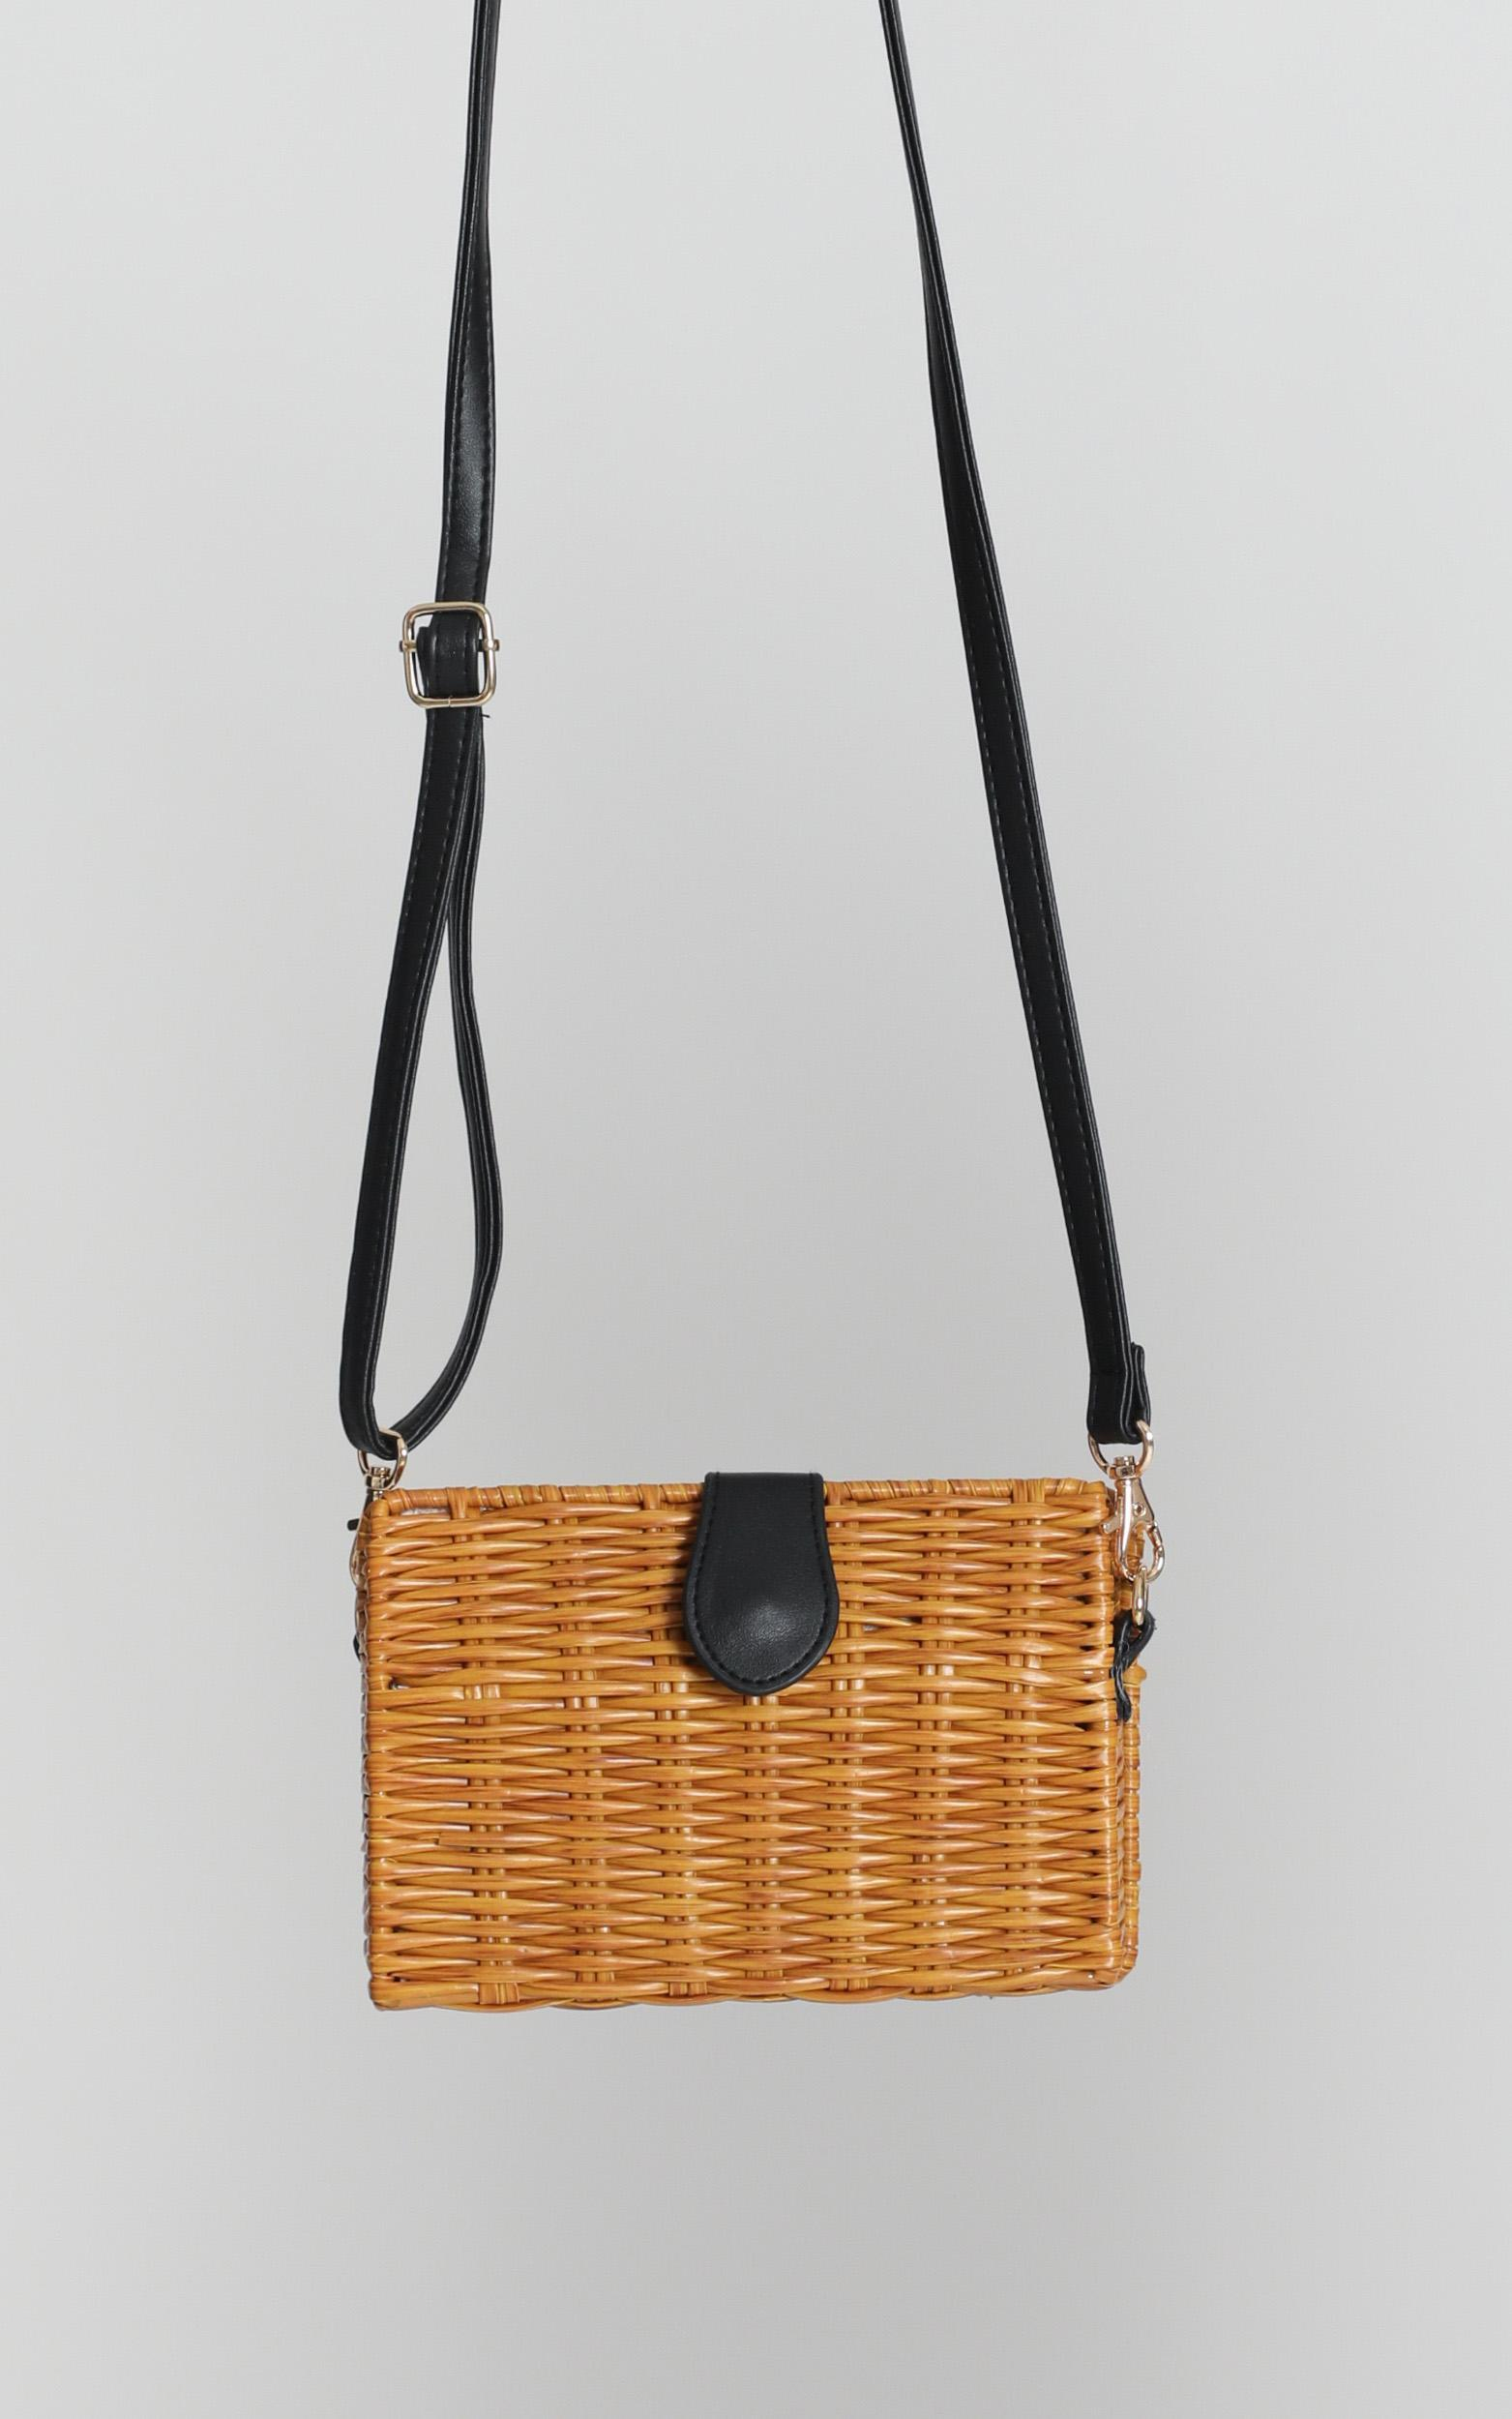 Summer Days Straw Bag In Tan, , hi-res image number null